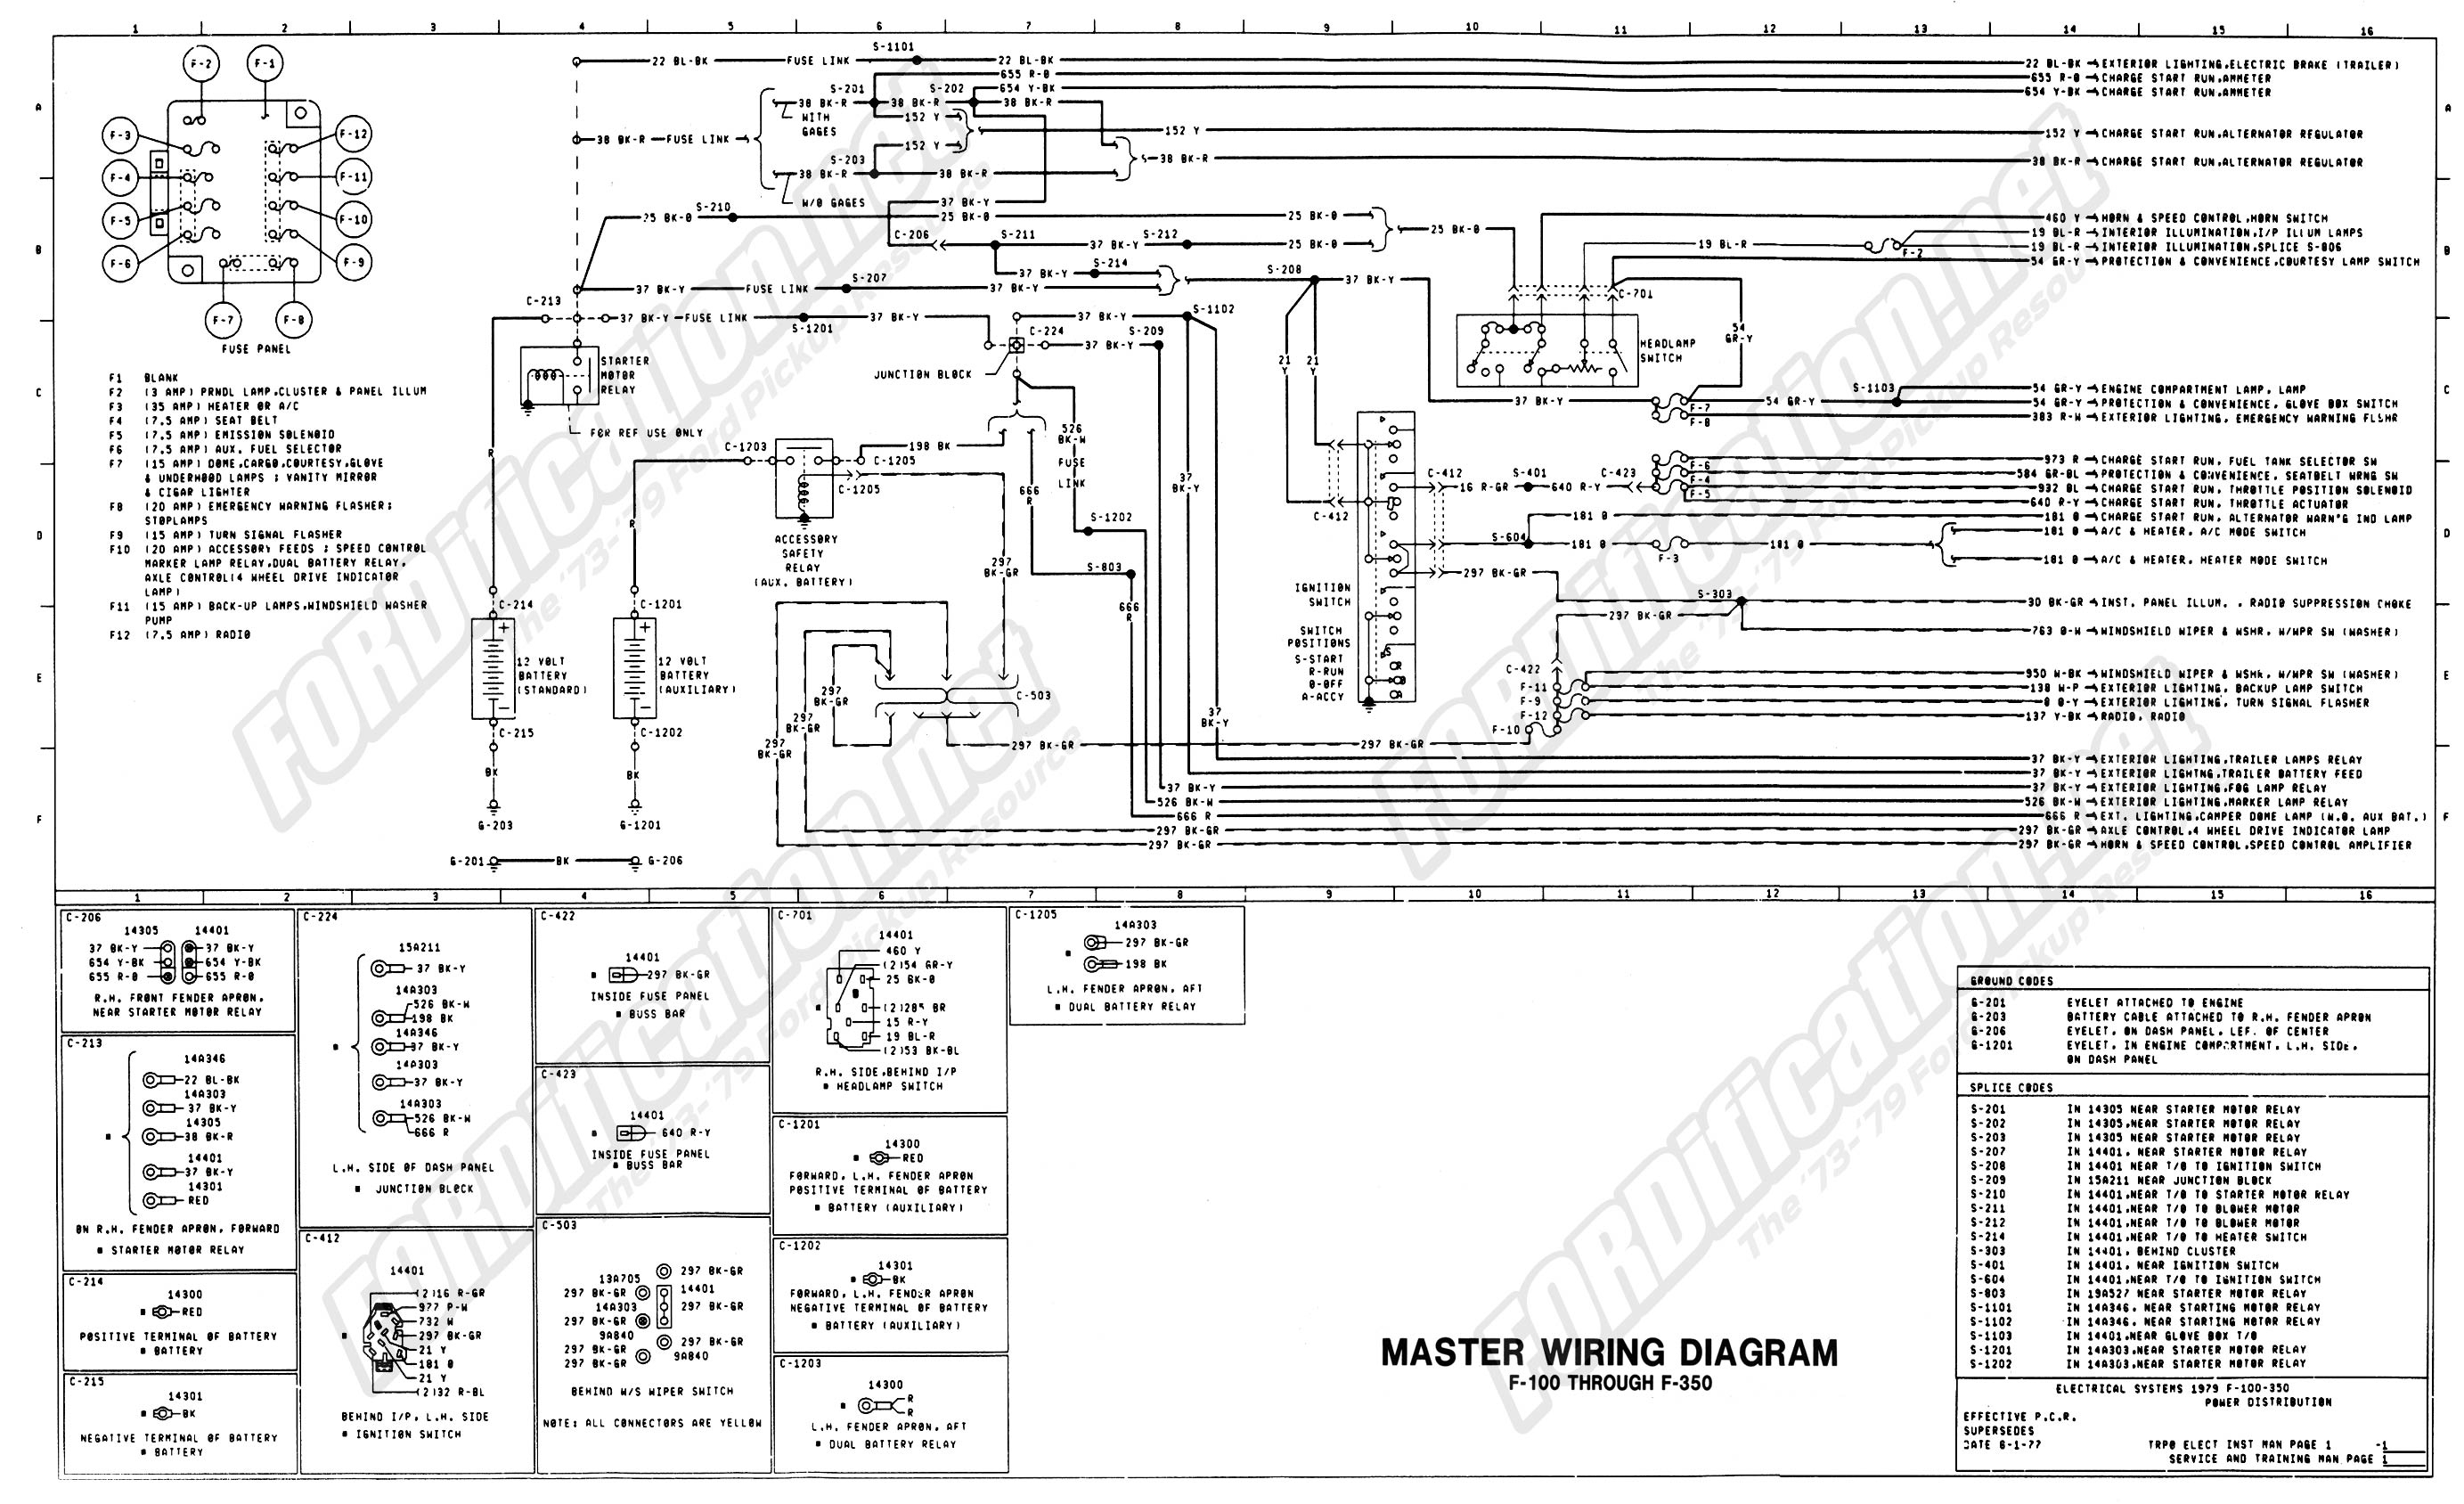 1999 mack truck fuse panel diagram